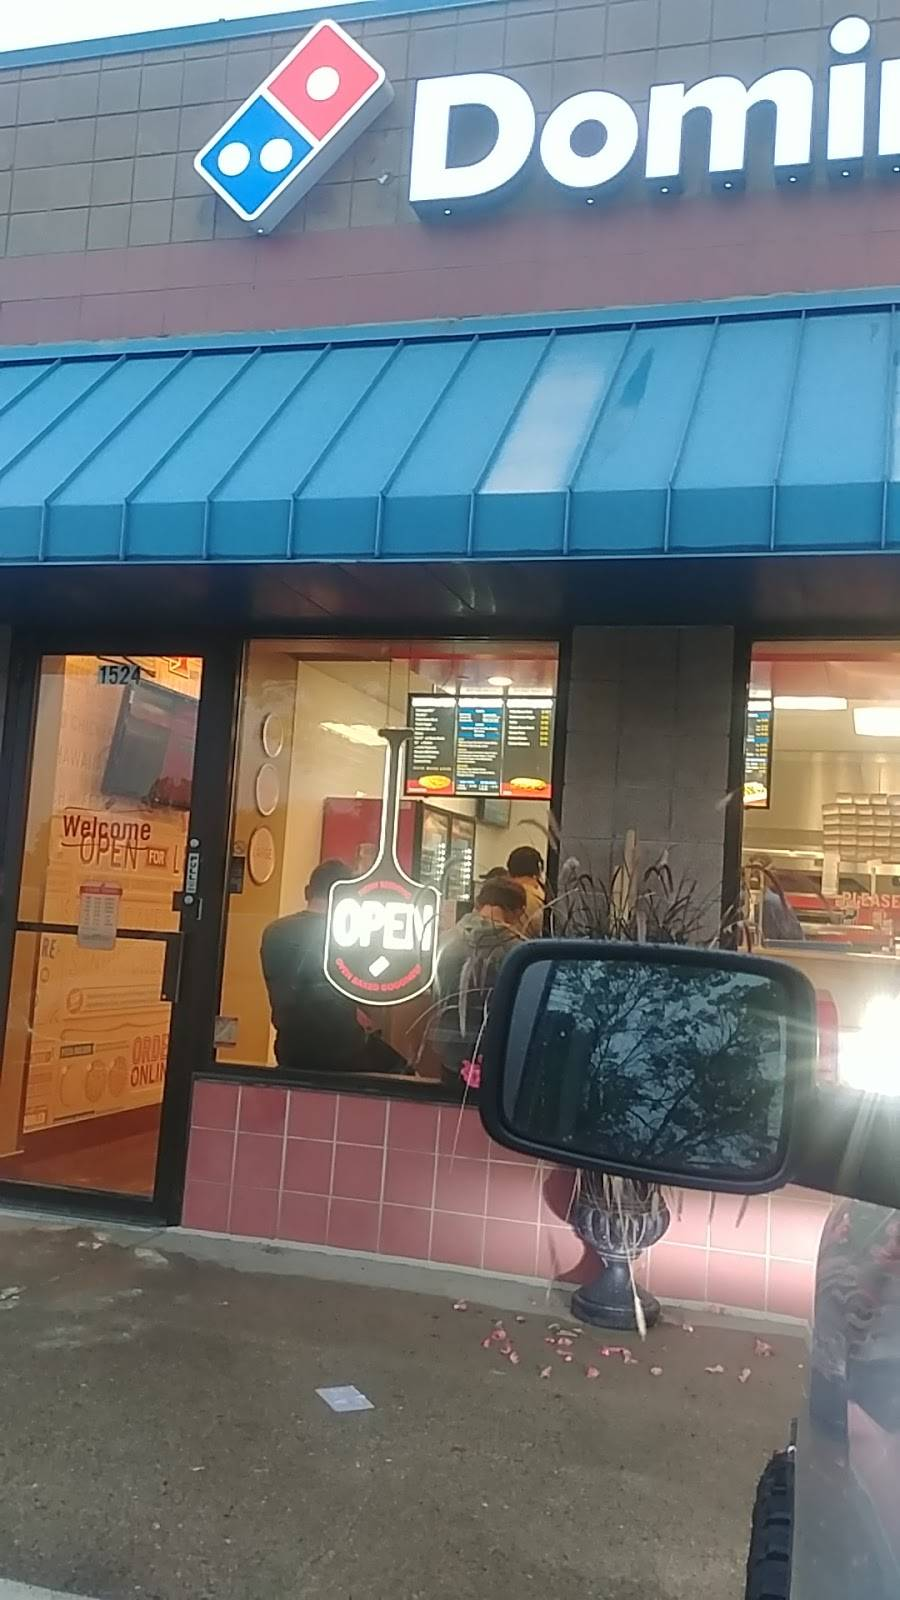 Dominos Pizza - meal delivery  | Photo 6 of 6 | Address: 1524 125th Ave NE, Blaine, MN 55449, USA | Phone: (763) 755-3030